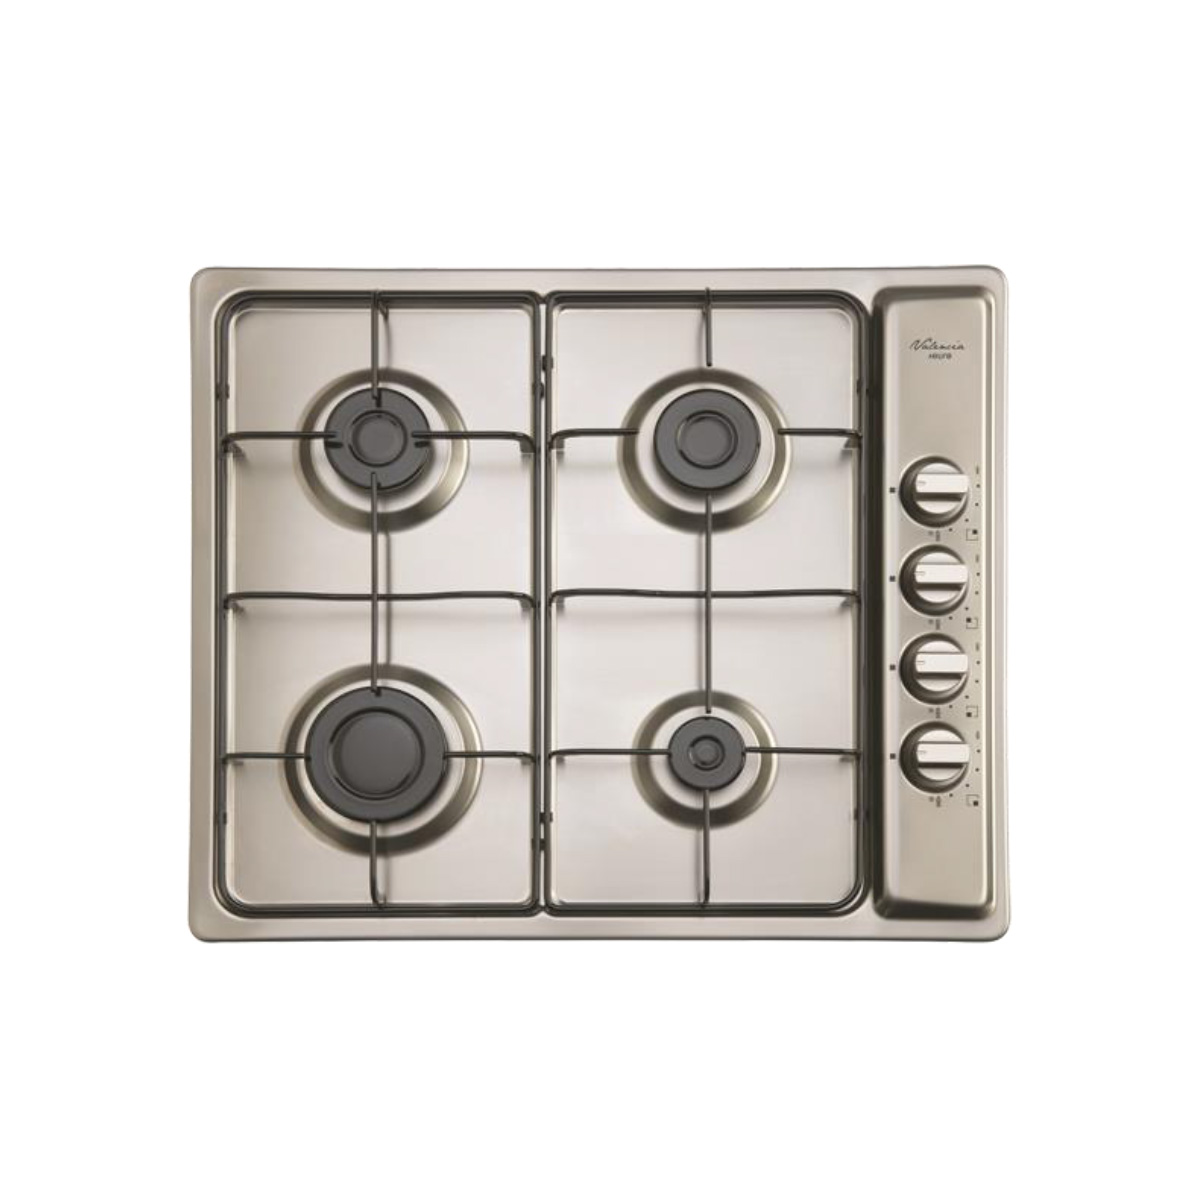 Euro EPZ4GSXV 60cm Stainless Steel Gas Cooktop